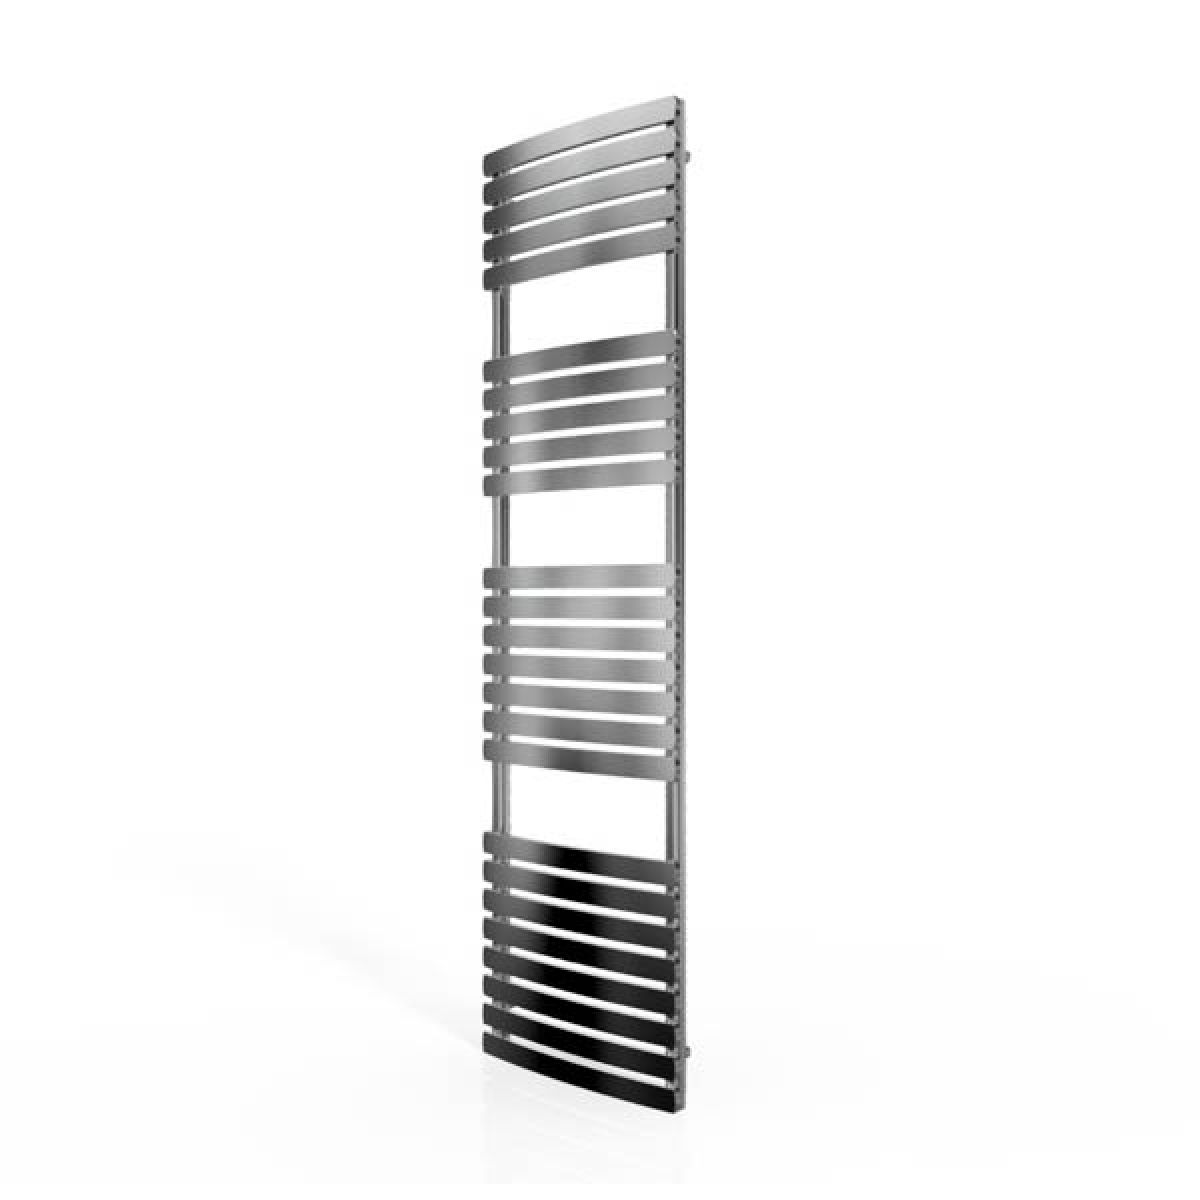 Cassellie Chrome Straight Heated Towel Rail With Flat Profile 1700 x 500mm